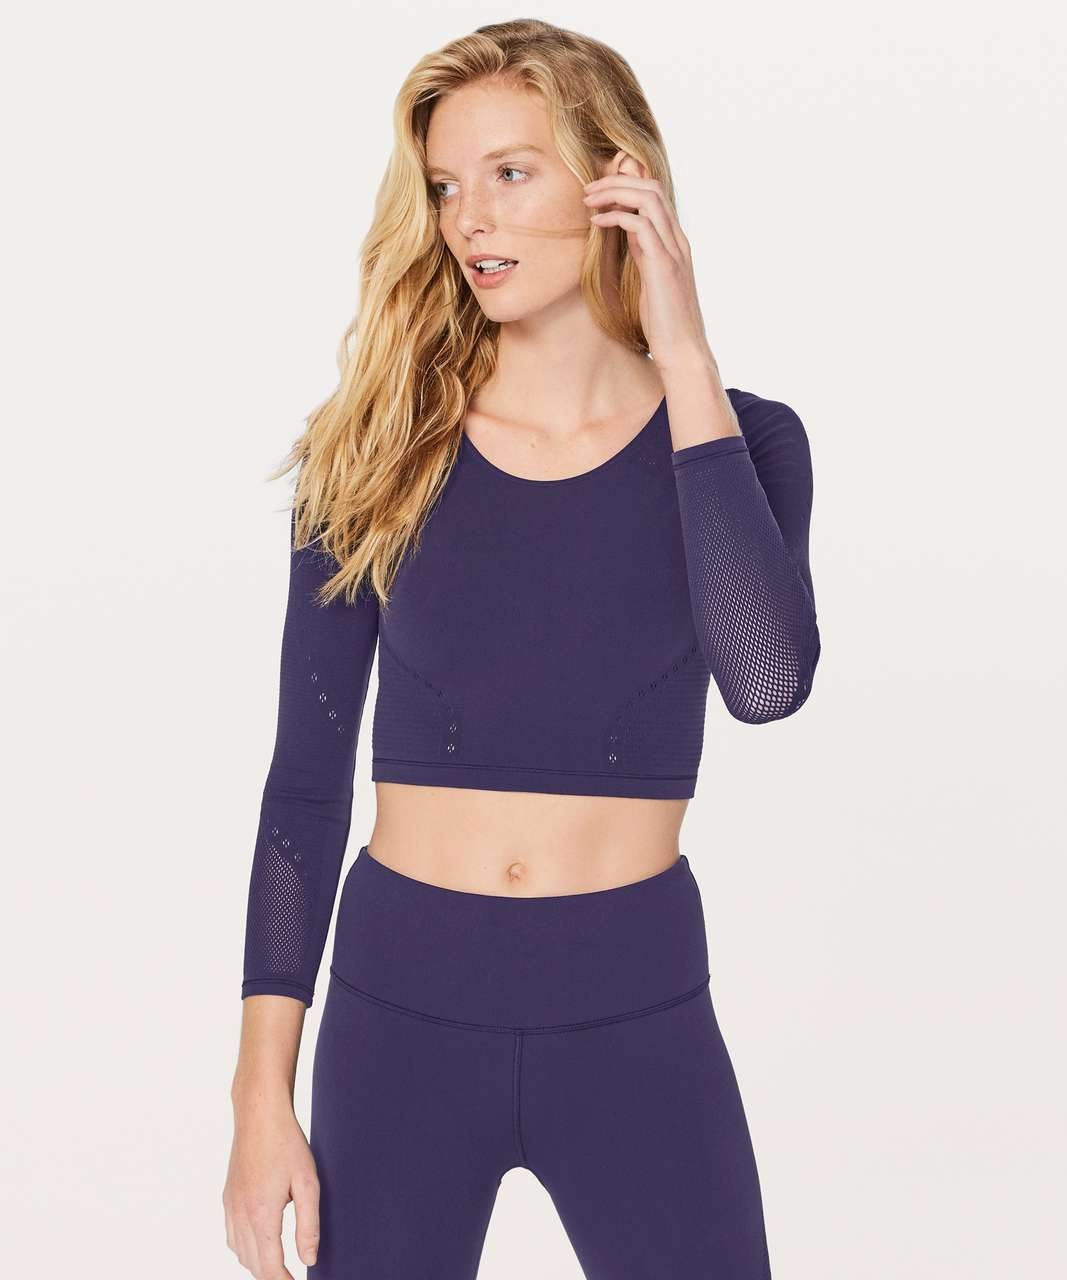 43894f90912e Lululemon Reveal Long Sleeve Crop Top *Posy - Aeon - lulu fanatics